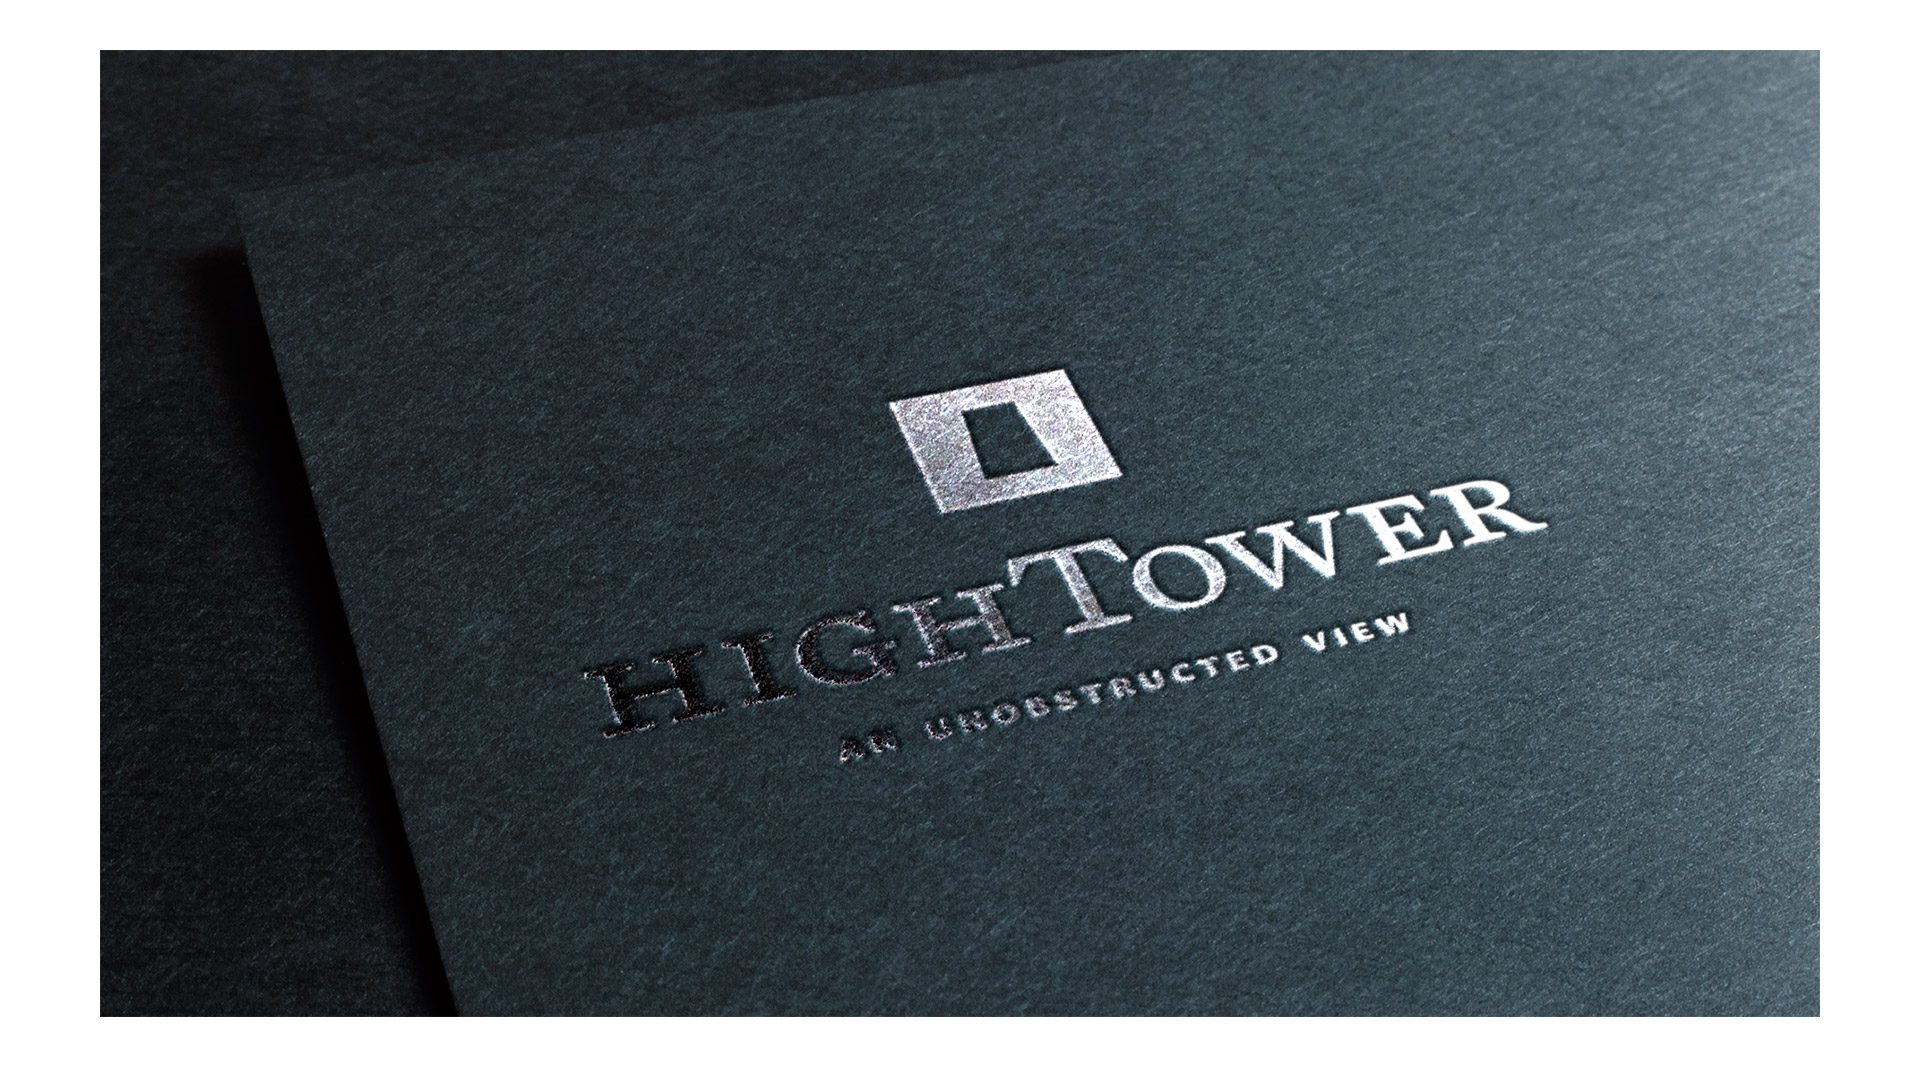 HighTower Book Cover